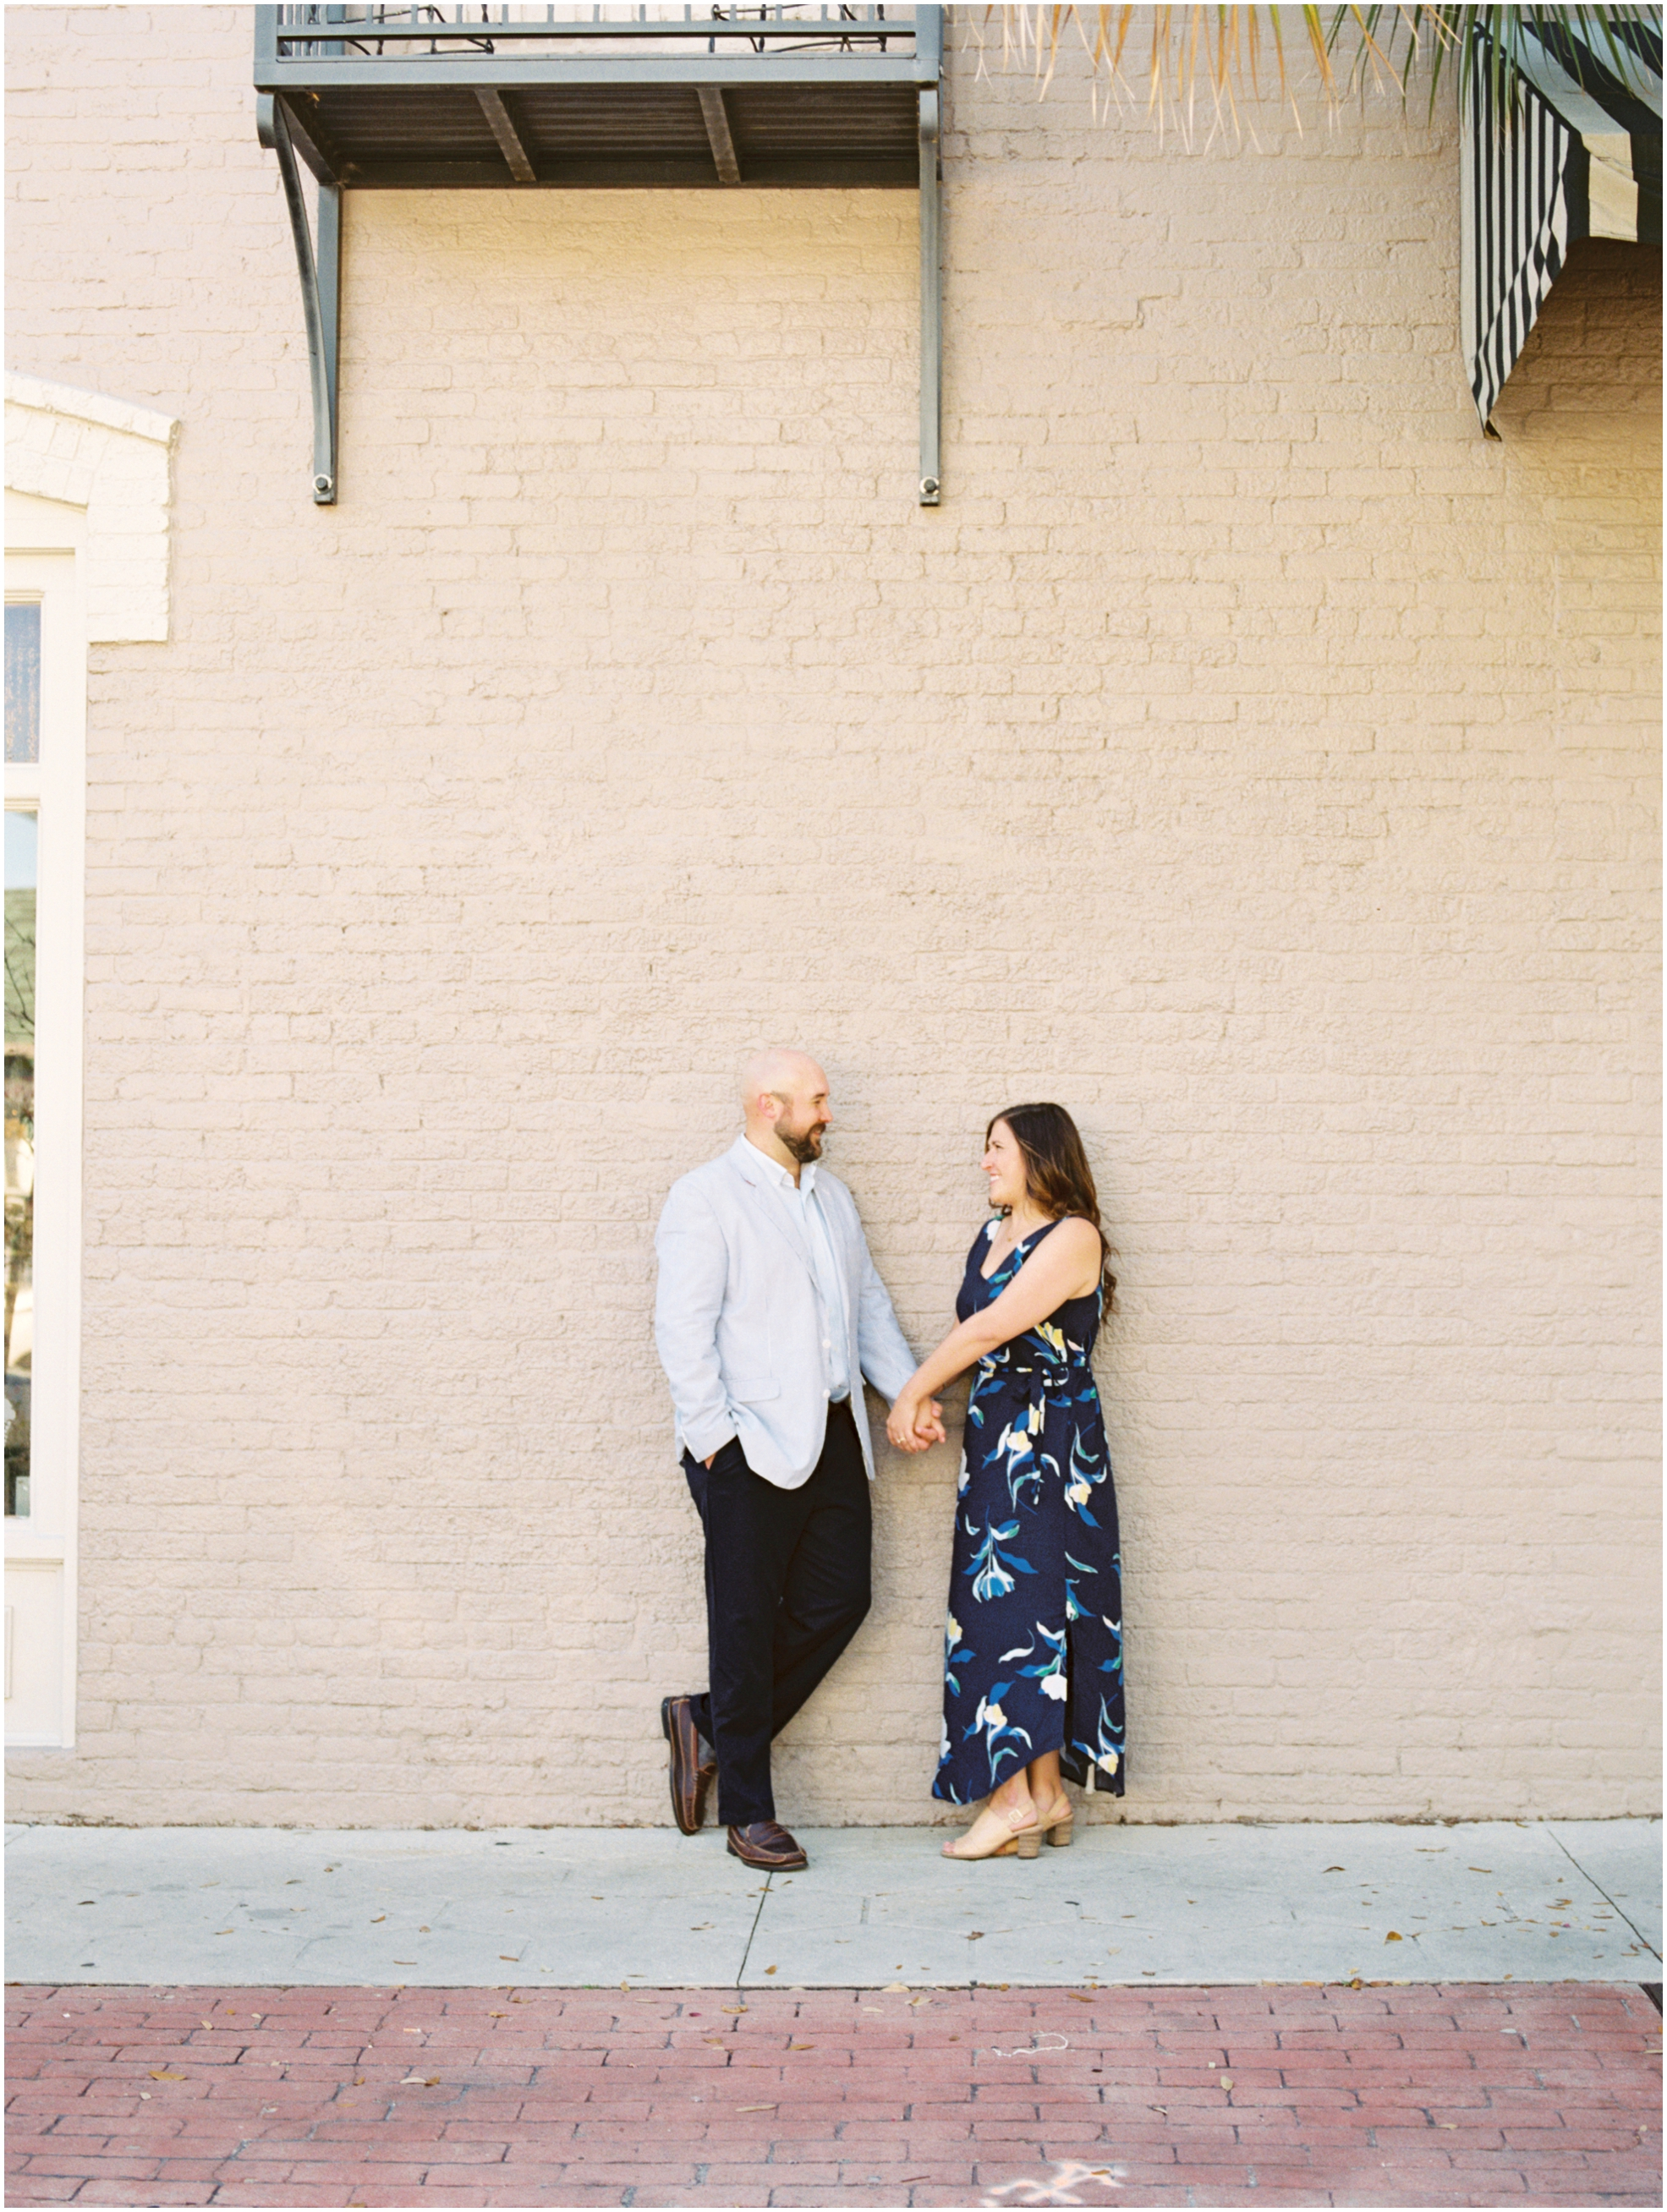 Lisa Silva Photography- Jacksonville, St. Augustine, Amelia Island, Ponte Vedra Beach, North East Florida Fine Art Film Photographer- Engagement Session in Historic Downtown Fernandina Beach- Amelia Island Wedding Photographer_0000.jpg